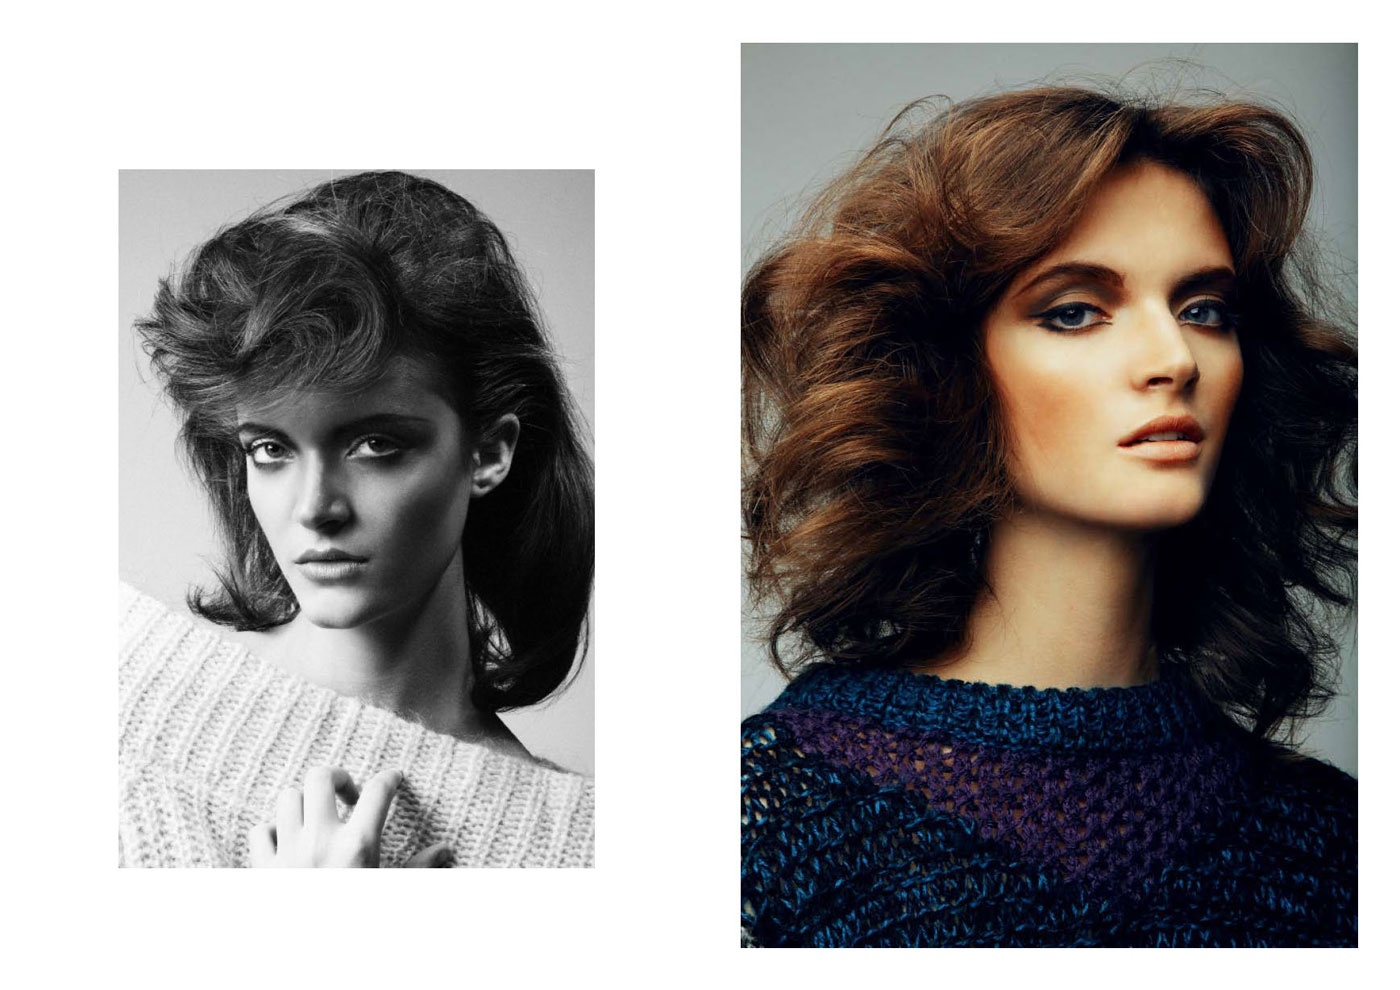 The Good Girls by Alice Rosati for Fashion Gone Rogue